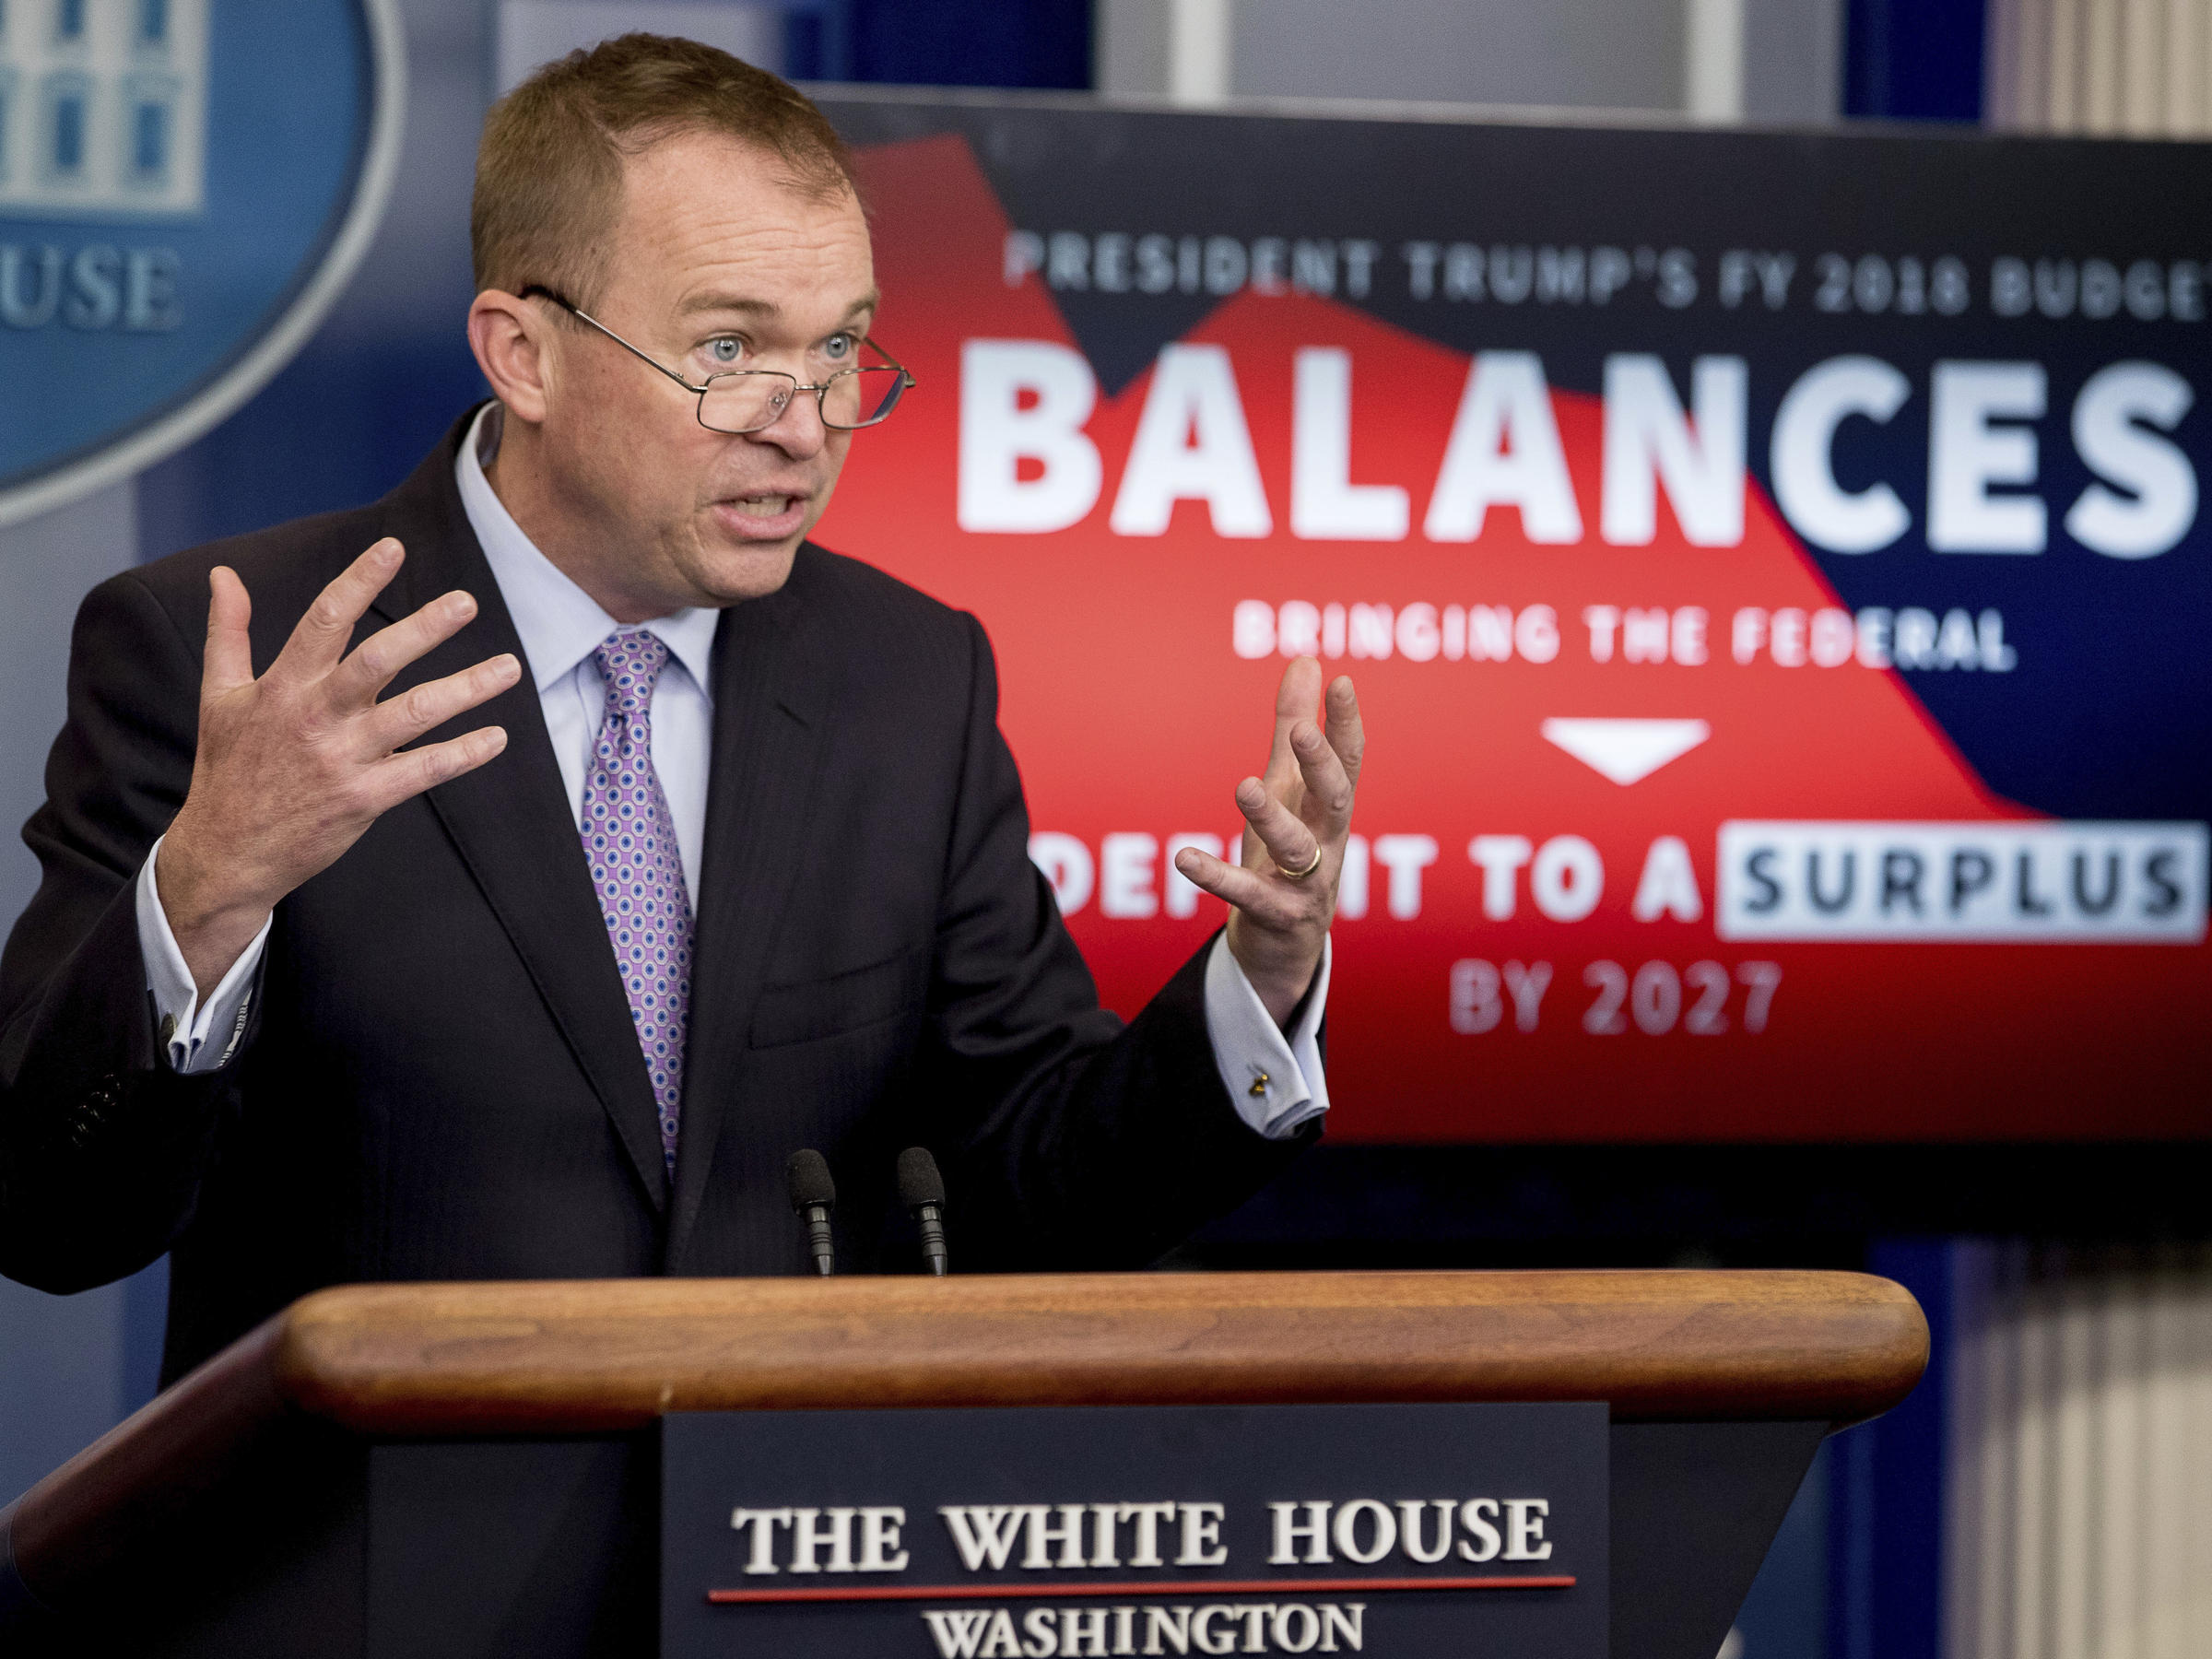 Trump administration proposes budget cuts for social programs